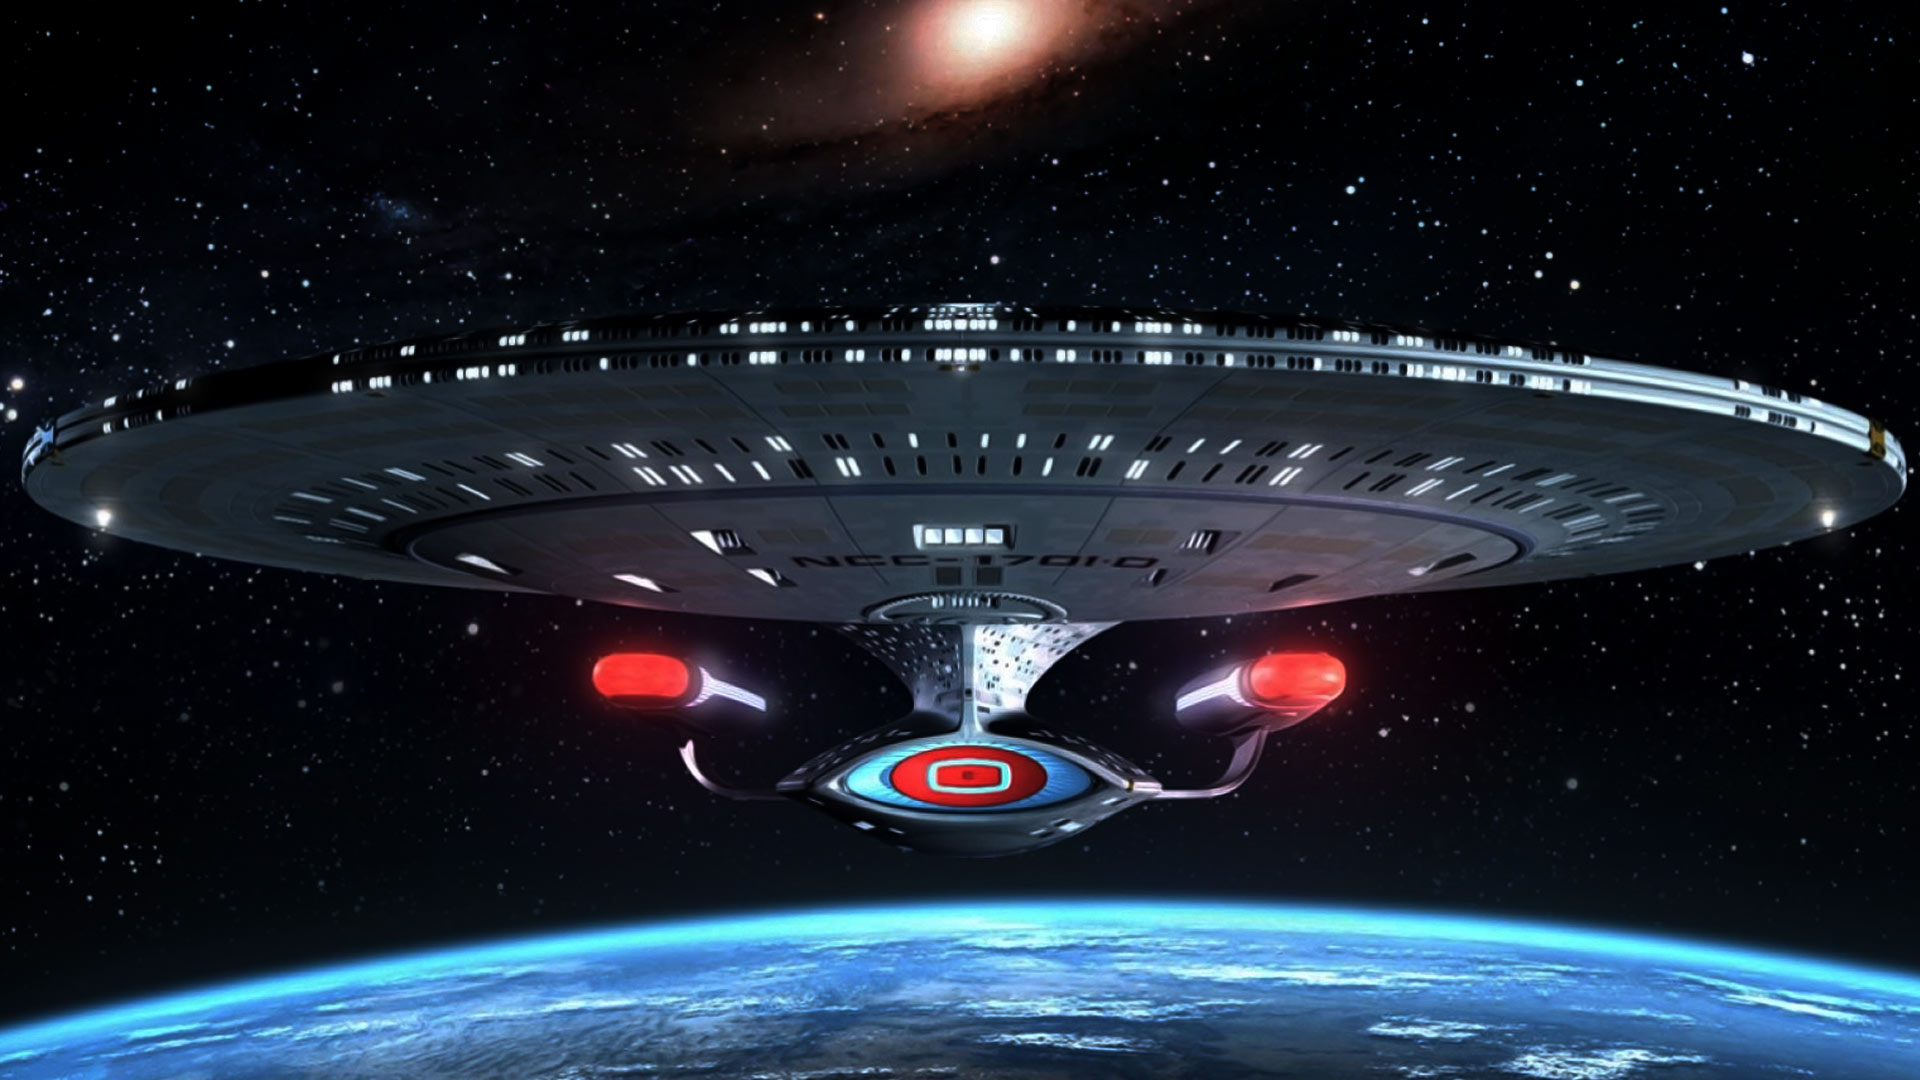 enterprise e wallpaper hd - photo #5